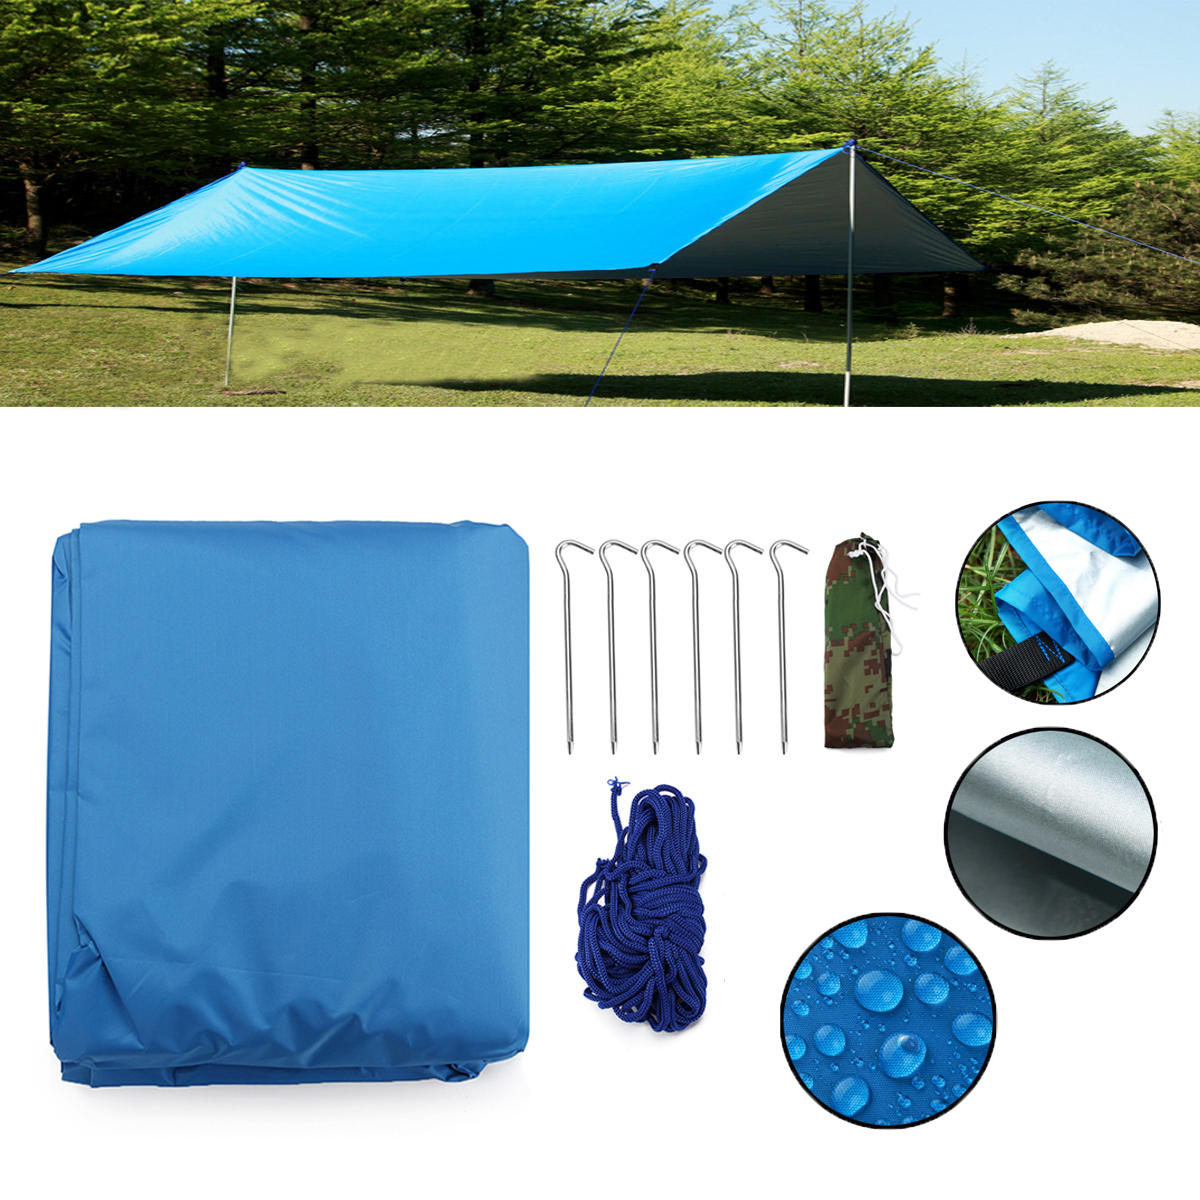 sports shoes c1088 fbc22 Outdoor Camping Waterproof Tarp Sunshade Awning Canopy Beach Tent Cover Sun  Shelter